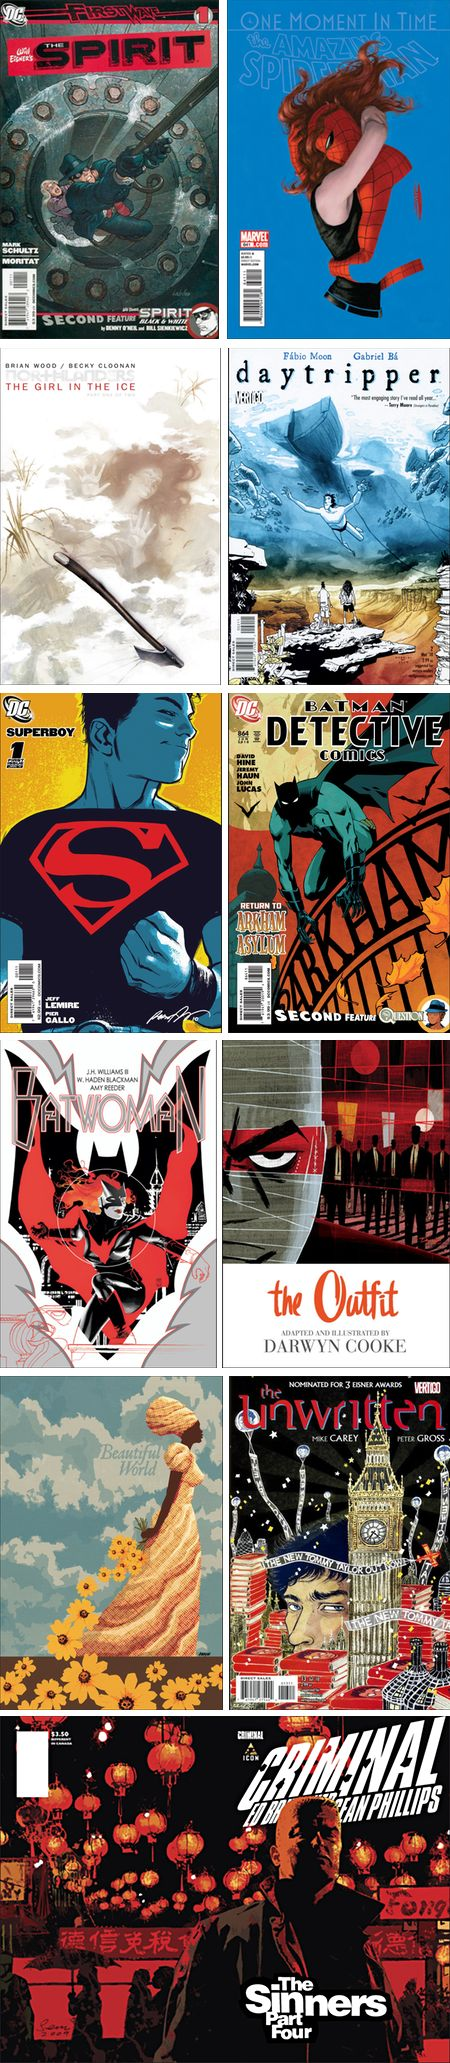 The 50 best comic covers of 2010 on Robot 6, .O. Ladronn, Paolo Rivera, Massimo Carnevale, Gabriel  Ba, Rafael Albuquerque, Cliff Chiang, J.H. Williams III, Darwyn Cooke, Dave Johnson, Yuko Shimiz, Sean Phillips